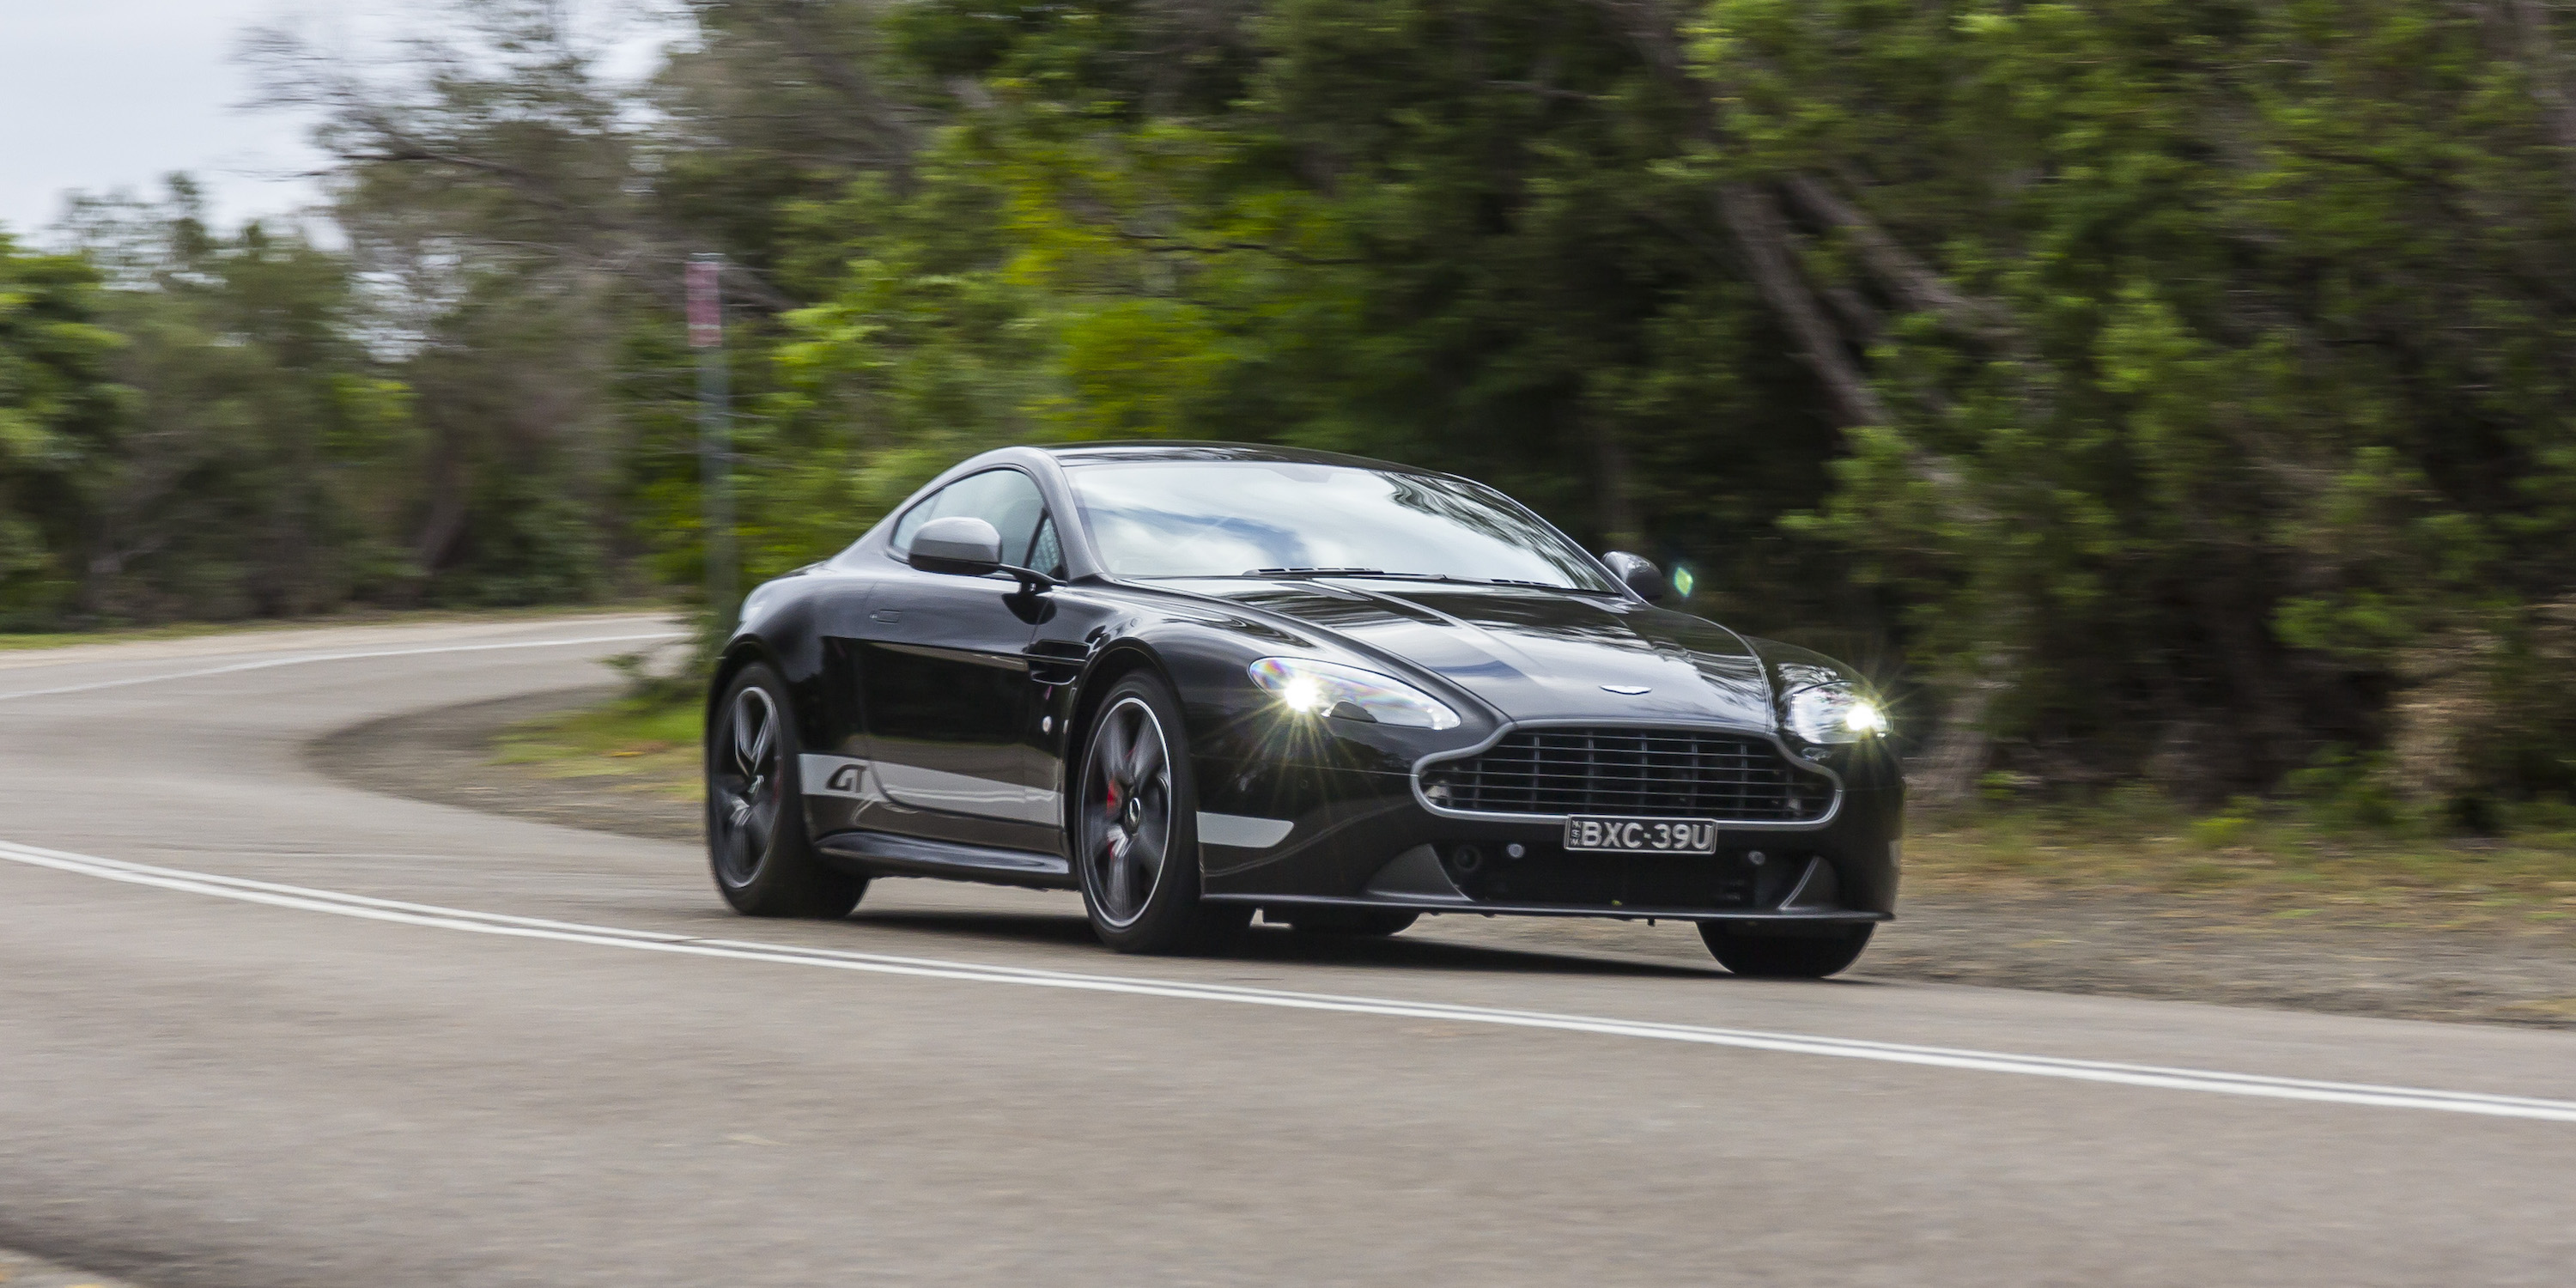 2016 Aston Martin Vantage Gt Performance Test (Photo 18 of 25)